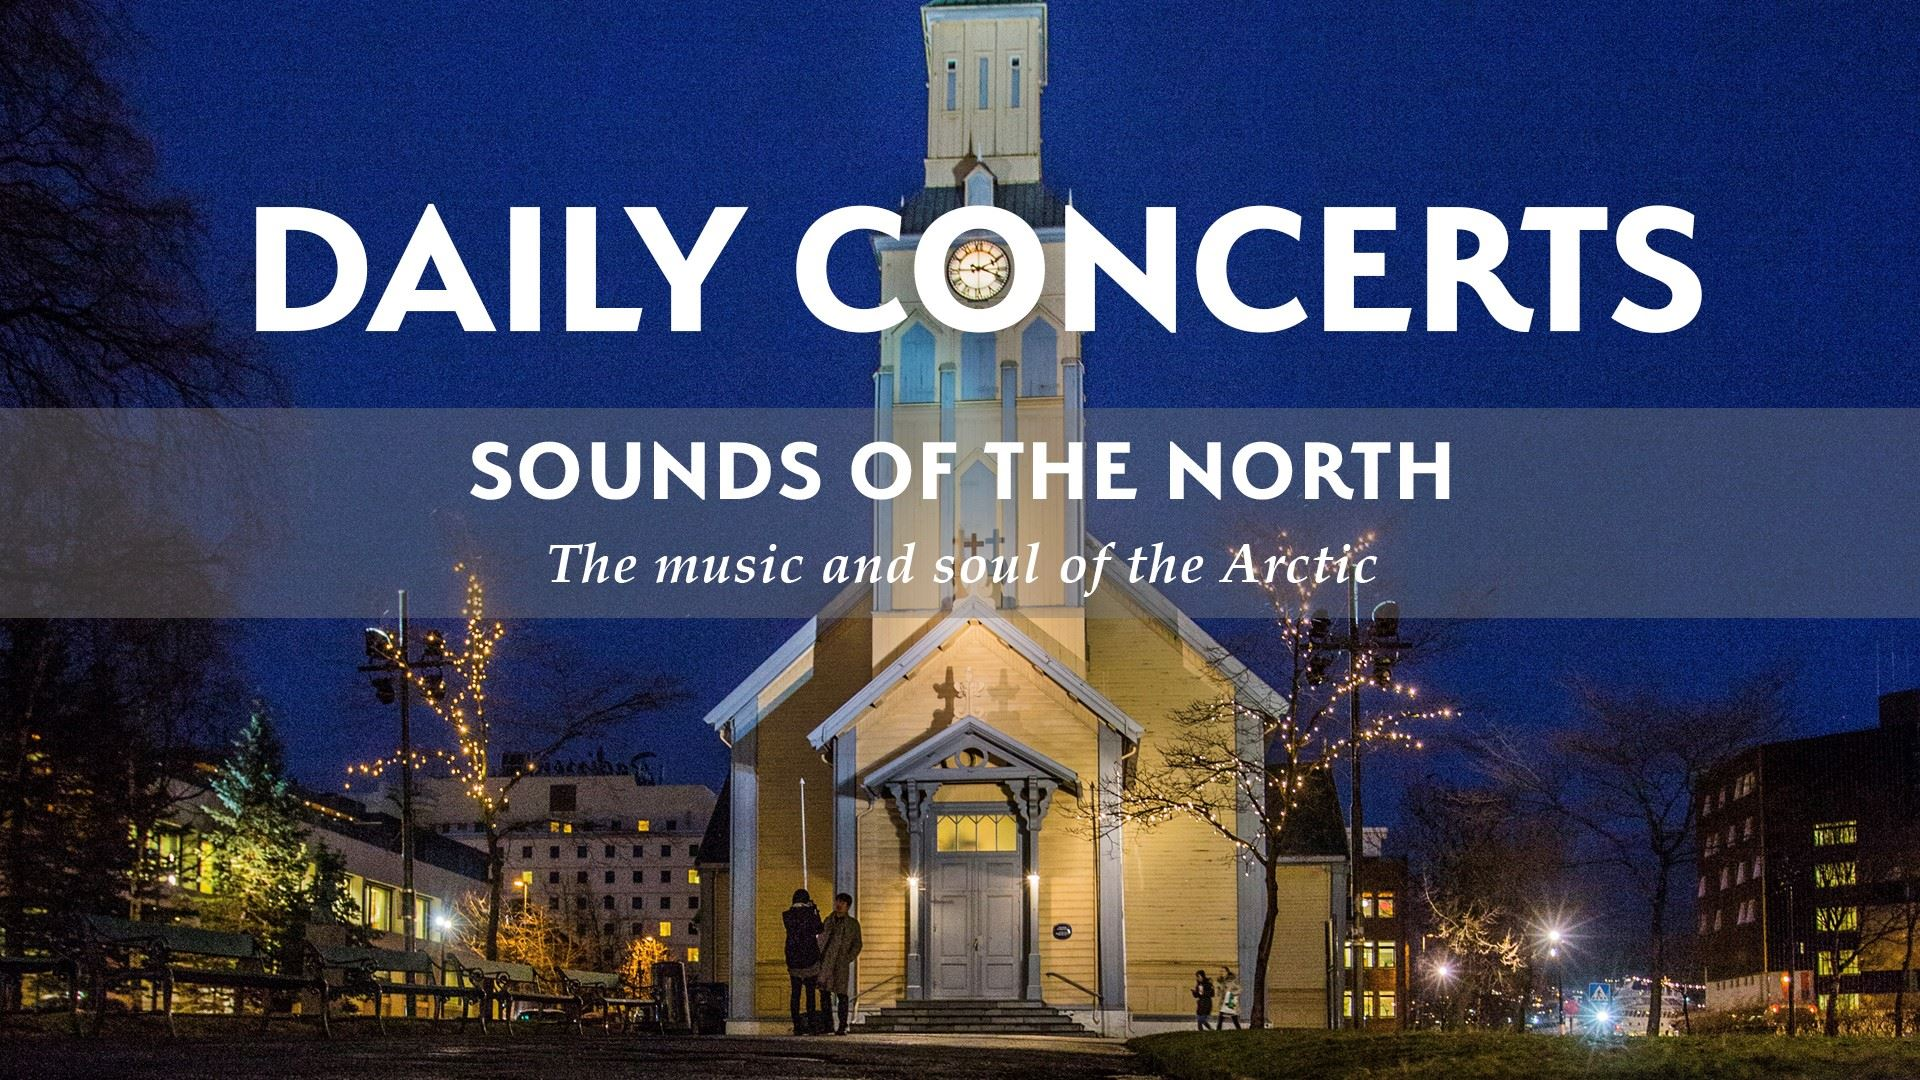 Sounds of the north